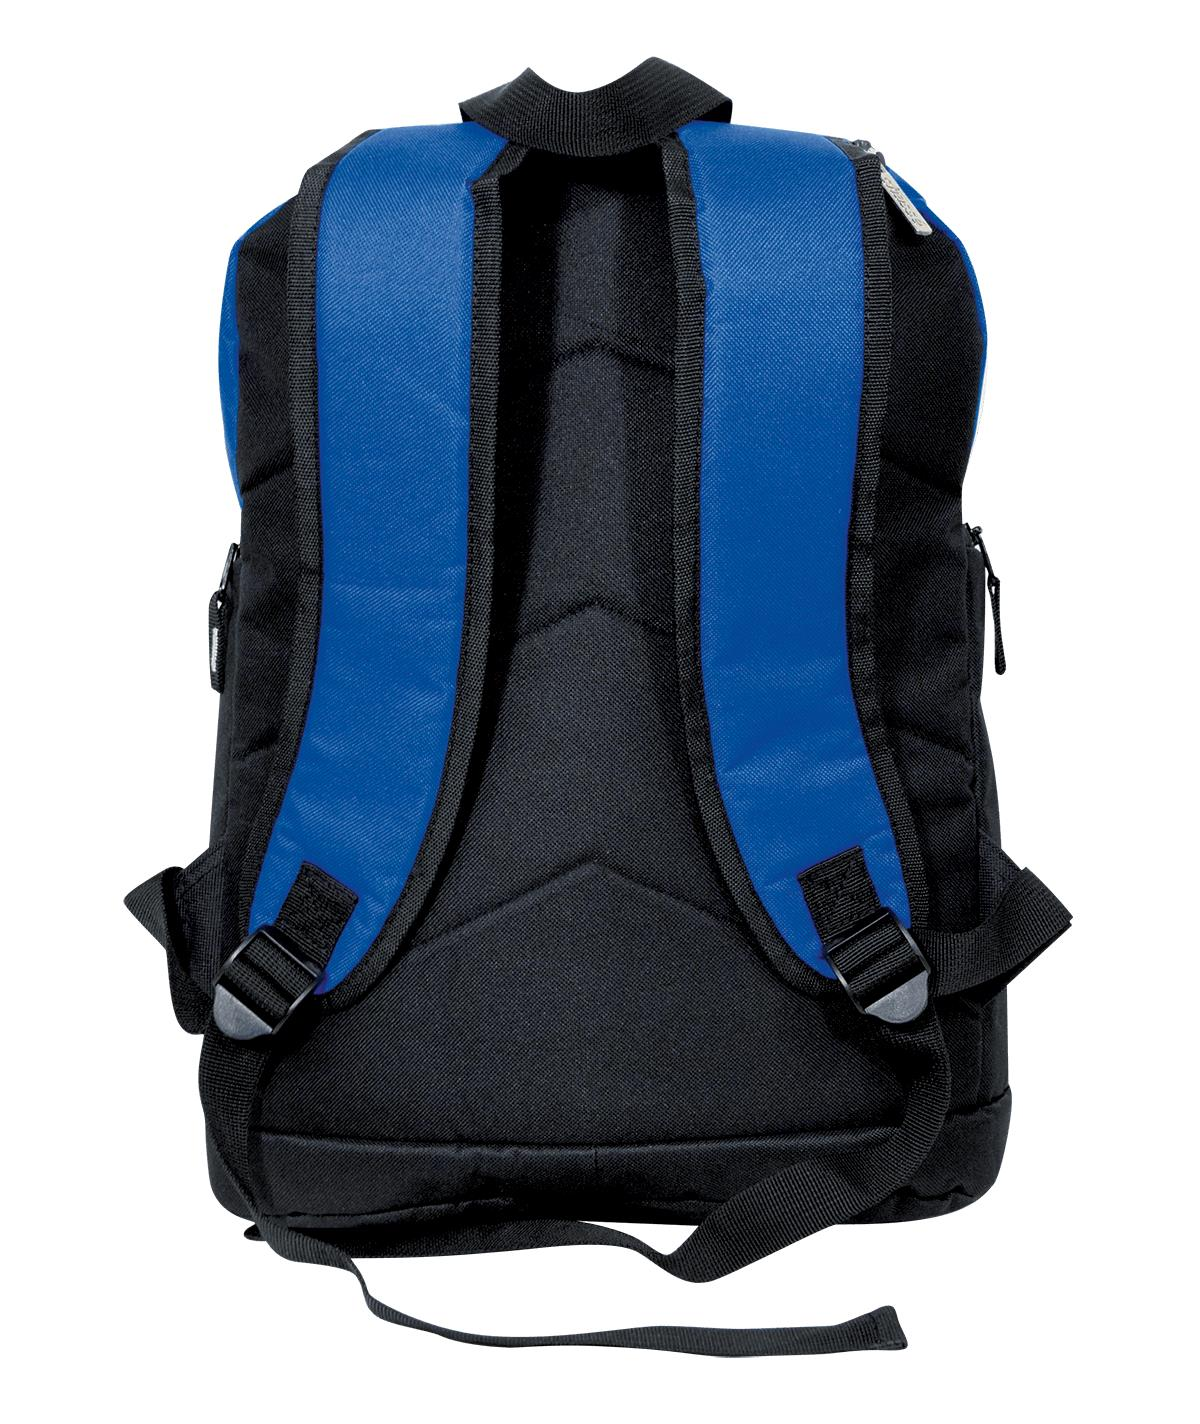 Chasse Deluxe Backpack